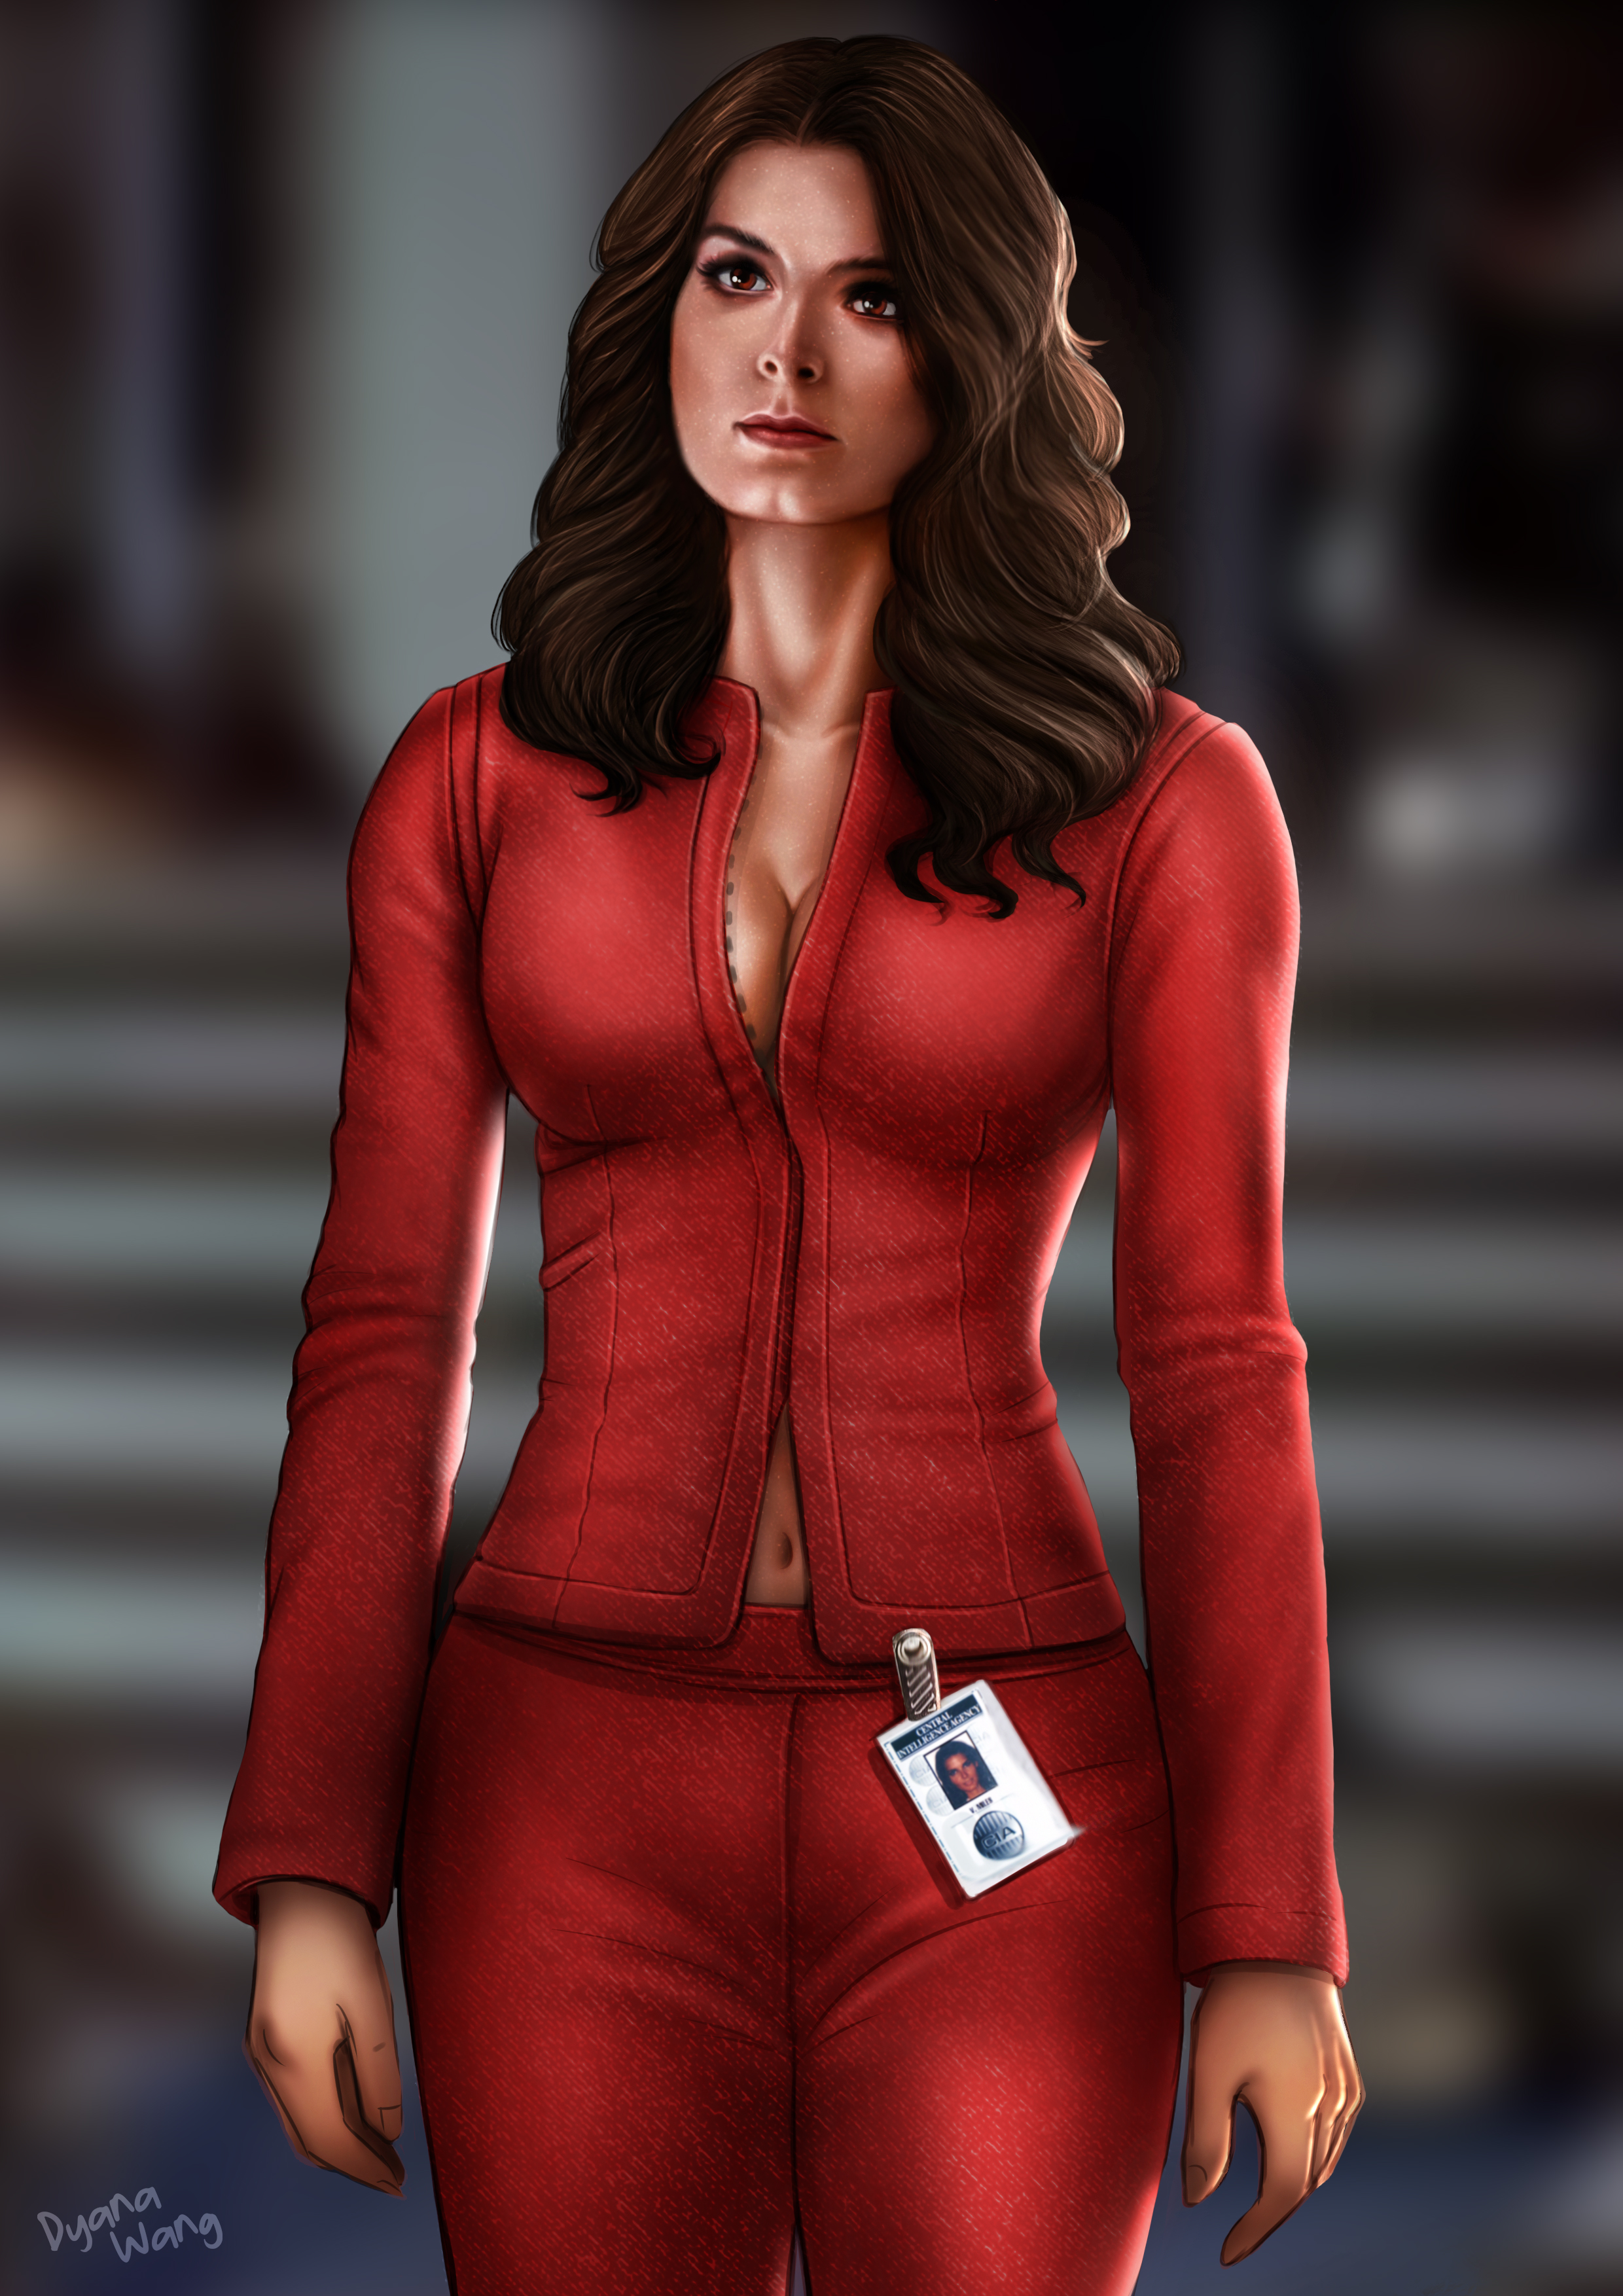 Agent In Red by Mikesw1234